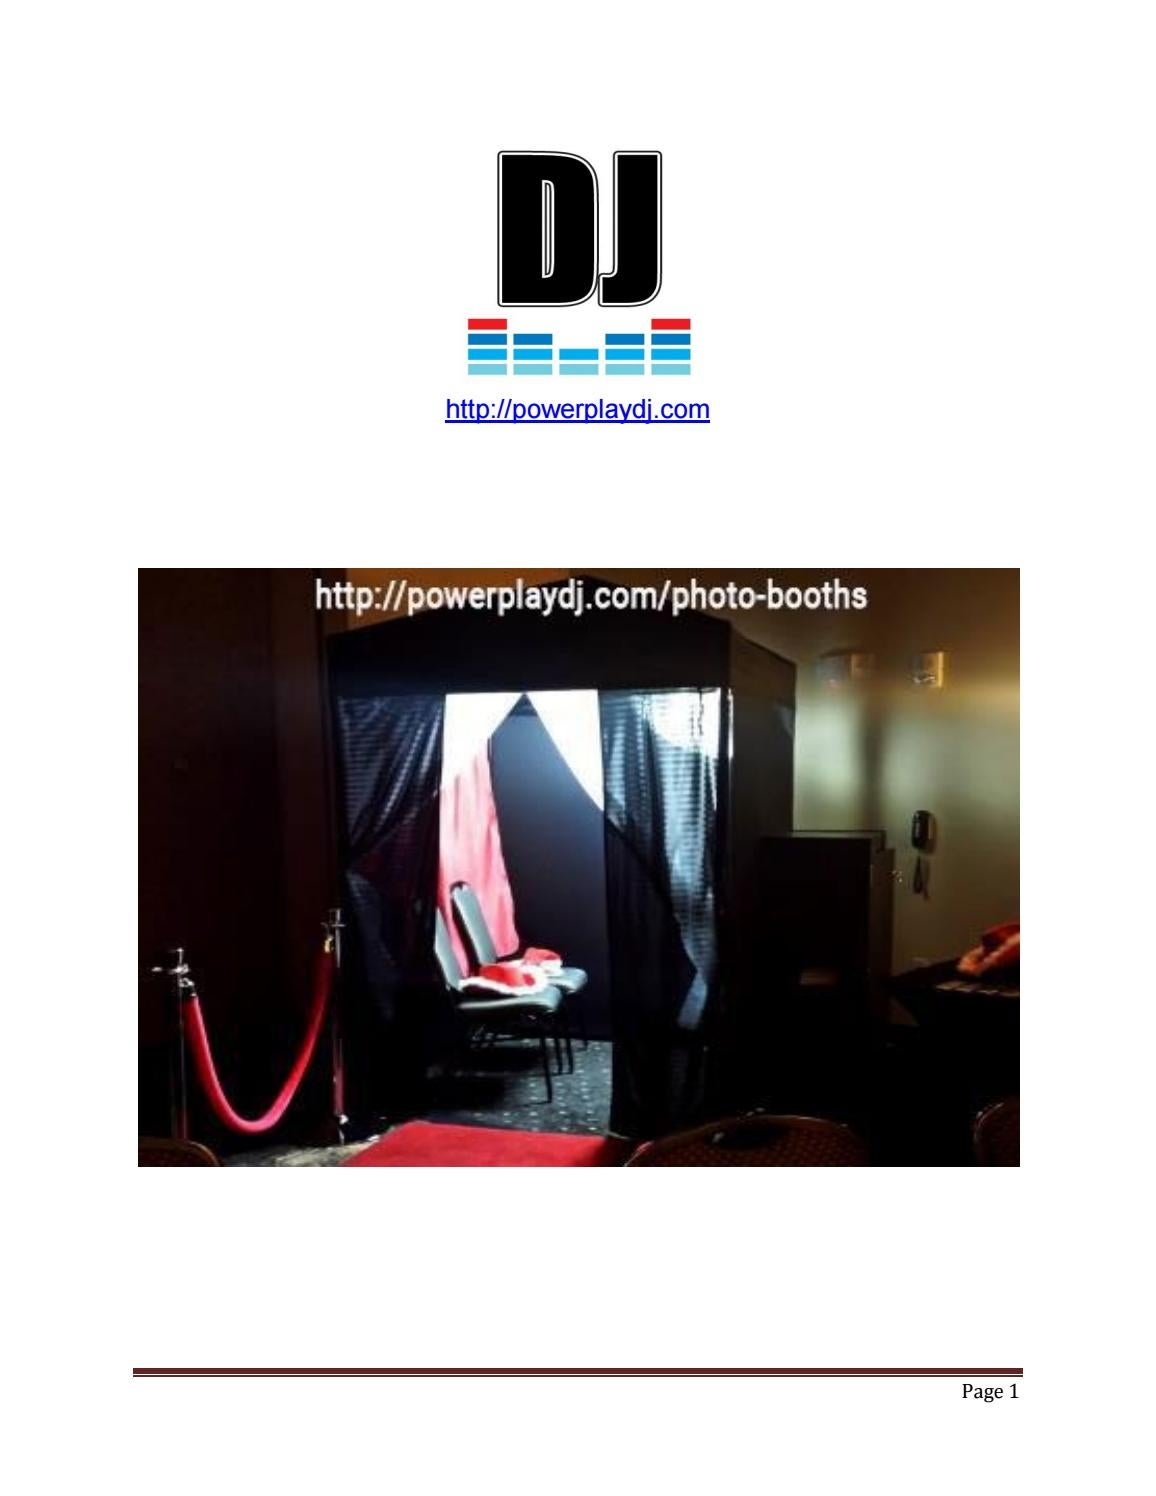 Photo booth fargo nd Internet based software for real estate professionals